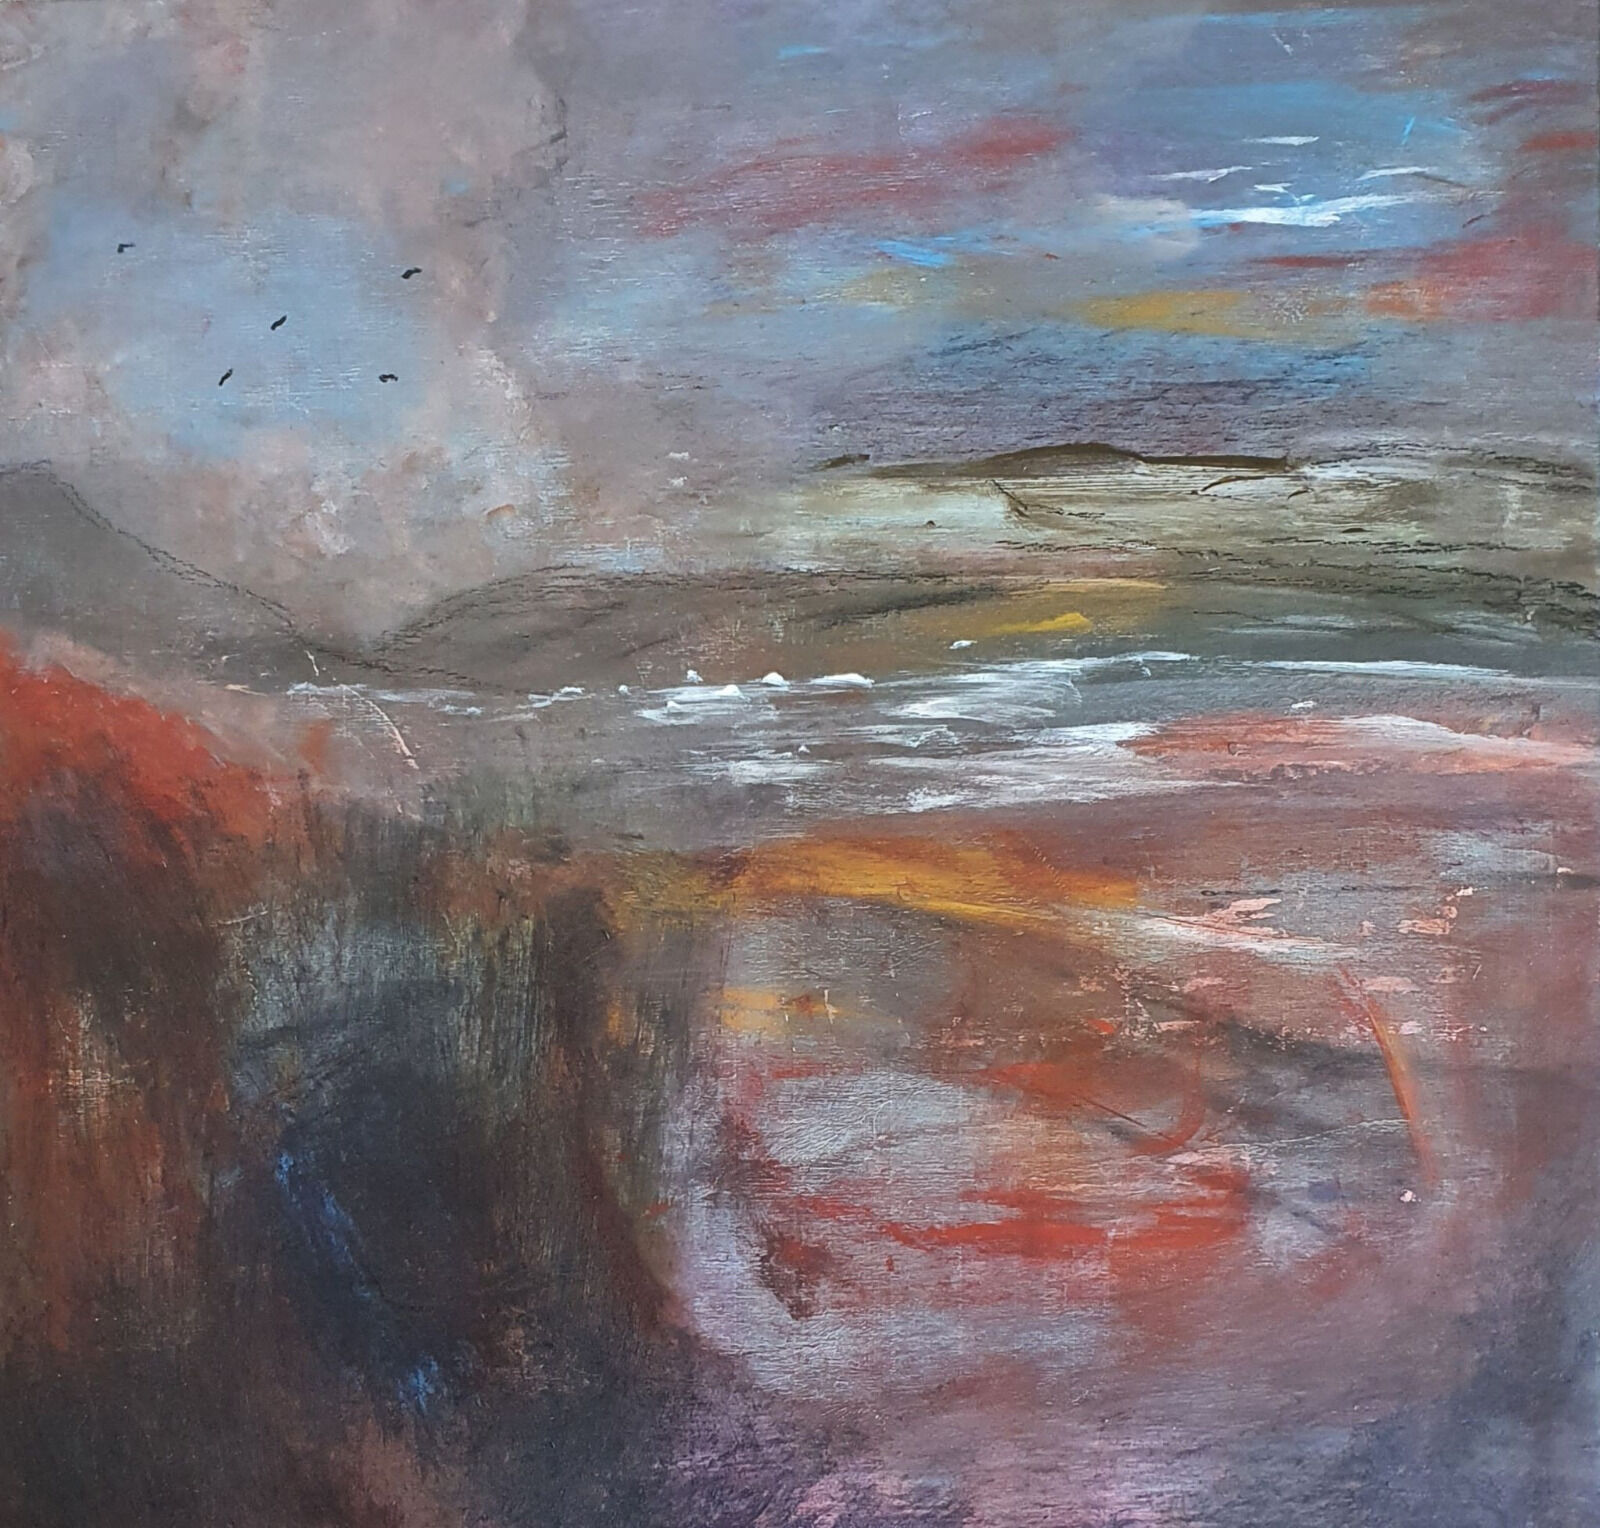 Seascape with red